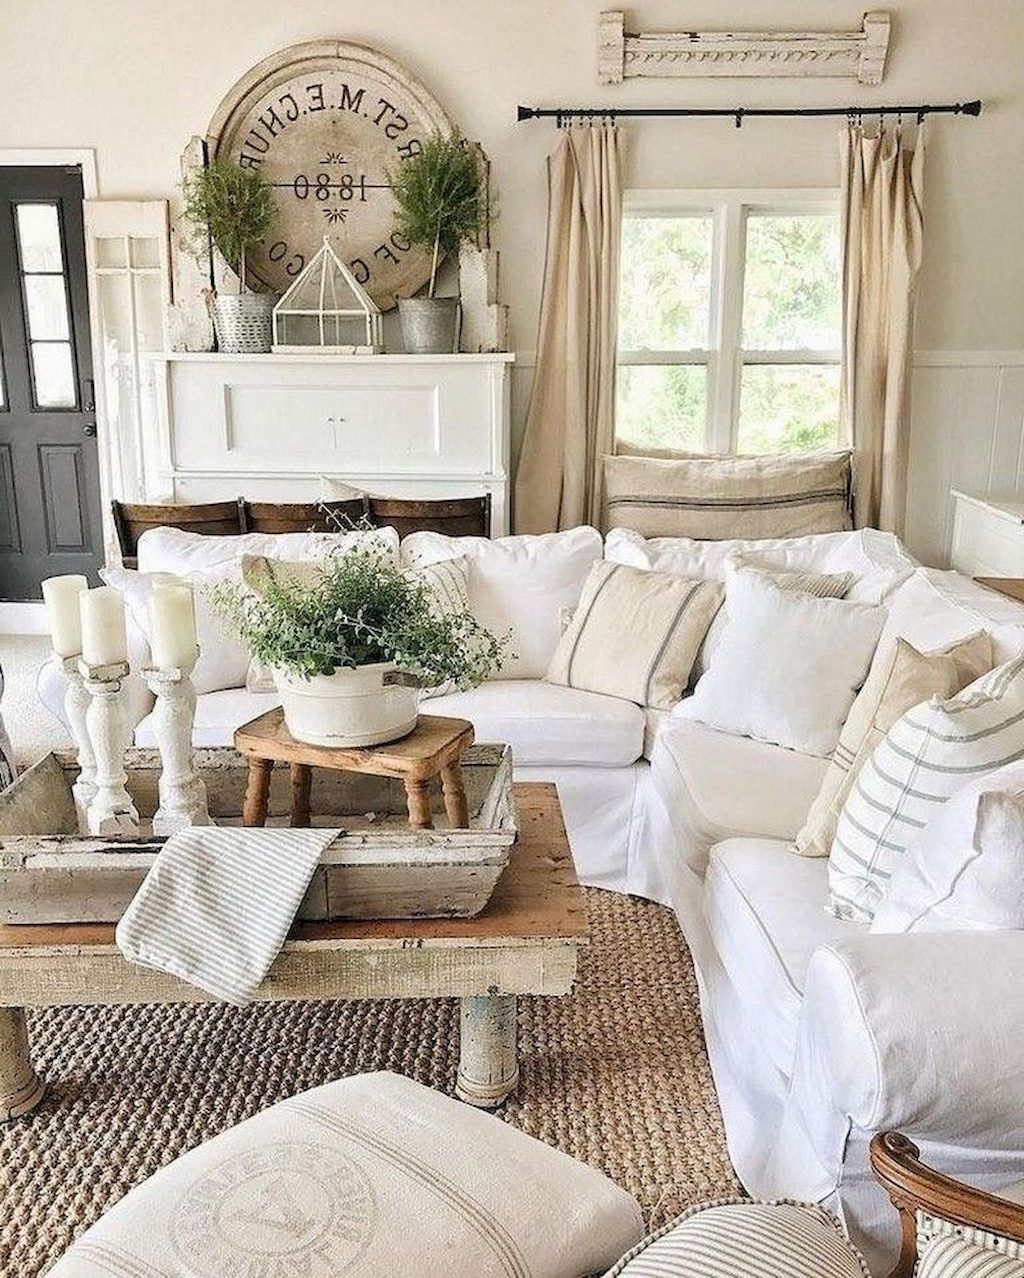 90 Cozy Farmhouse Living Room Rug Decor Ideas - HomeSpecially